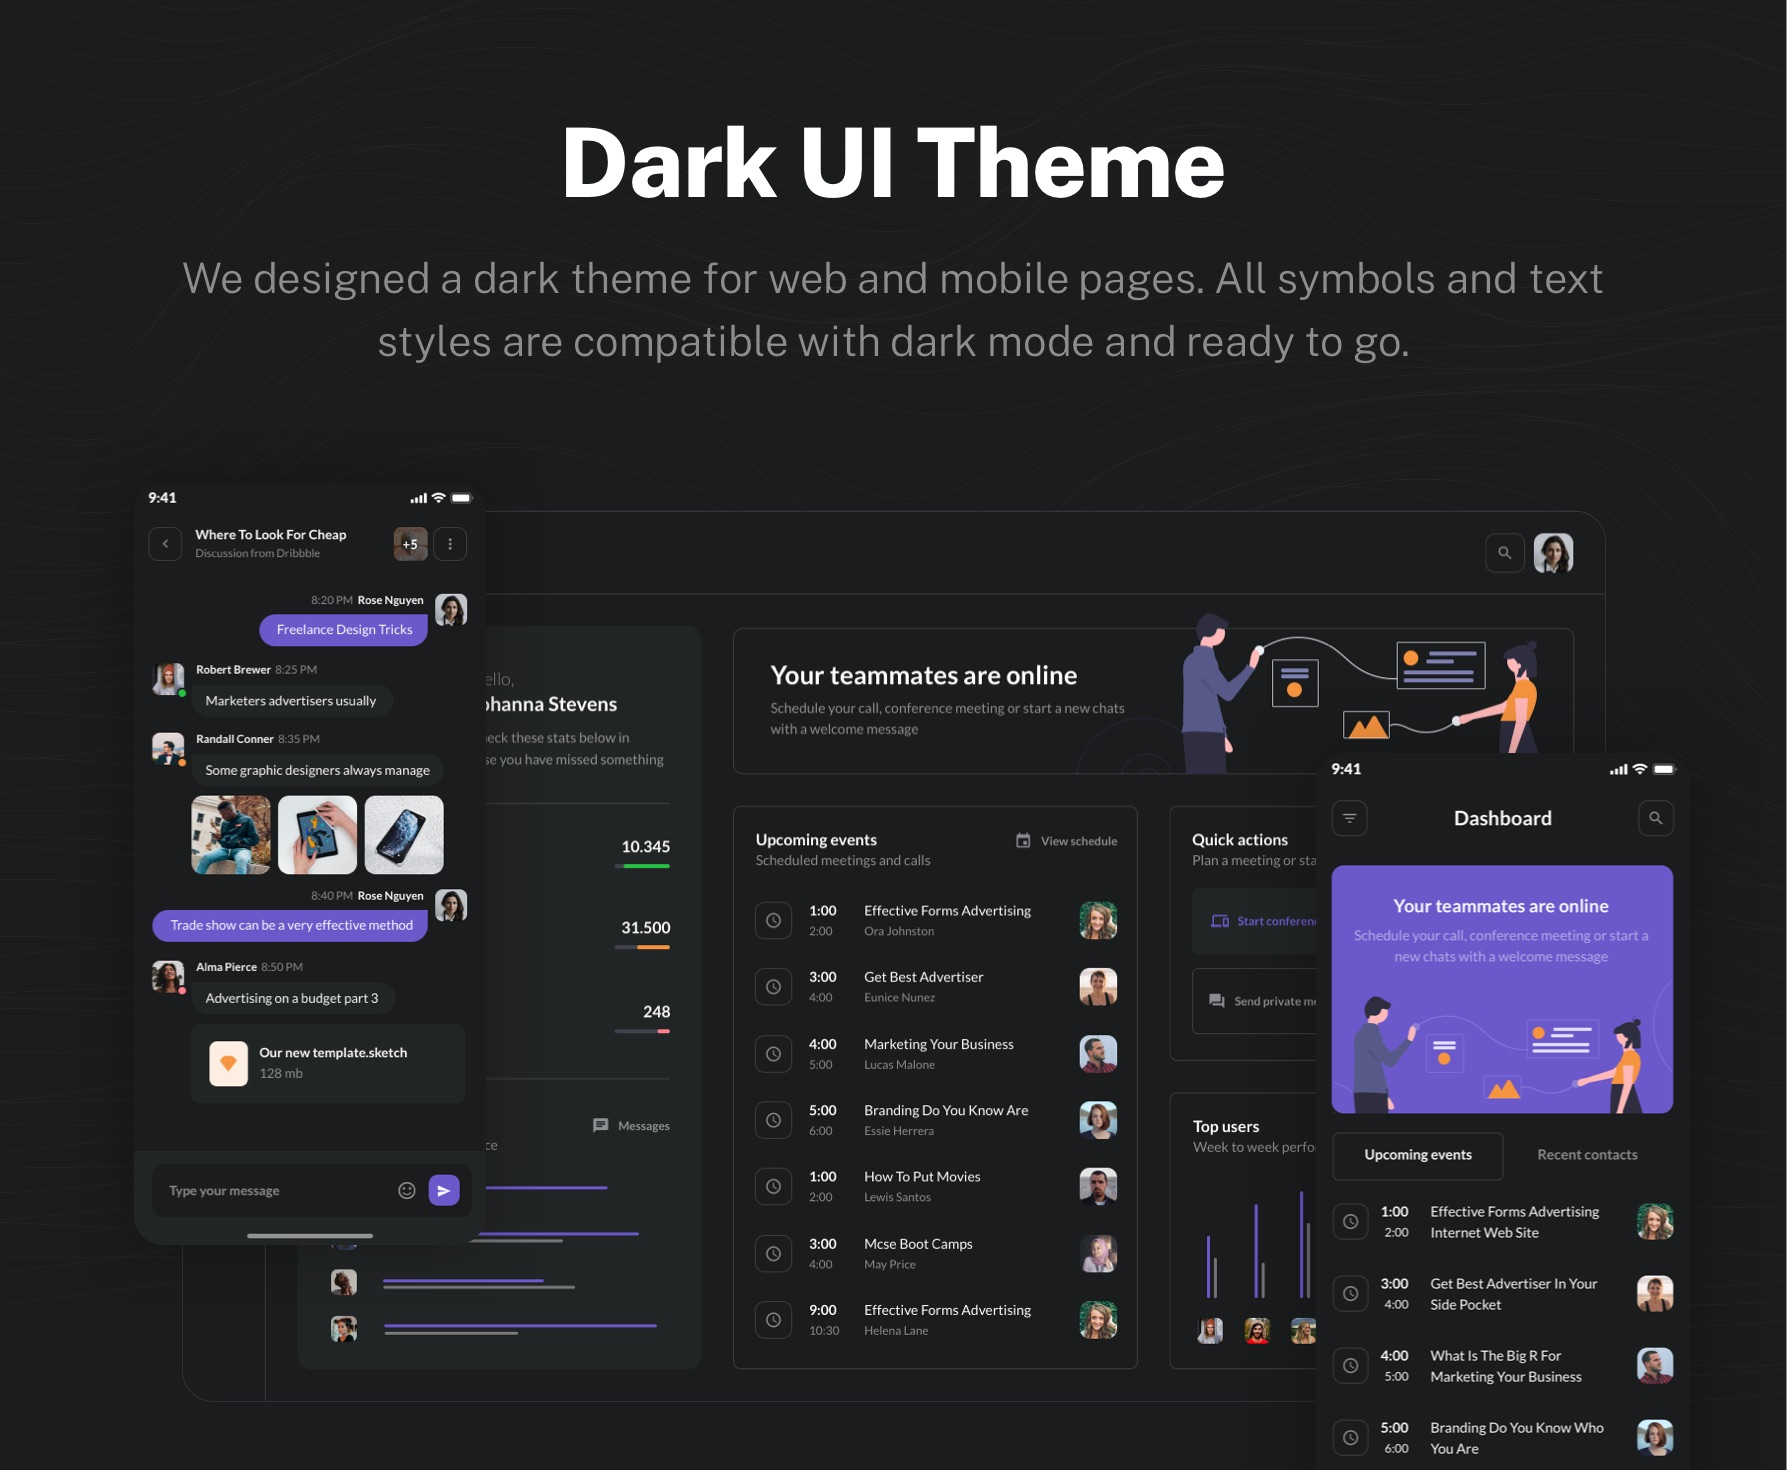 Dark UI Theme